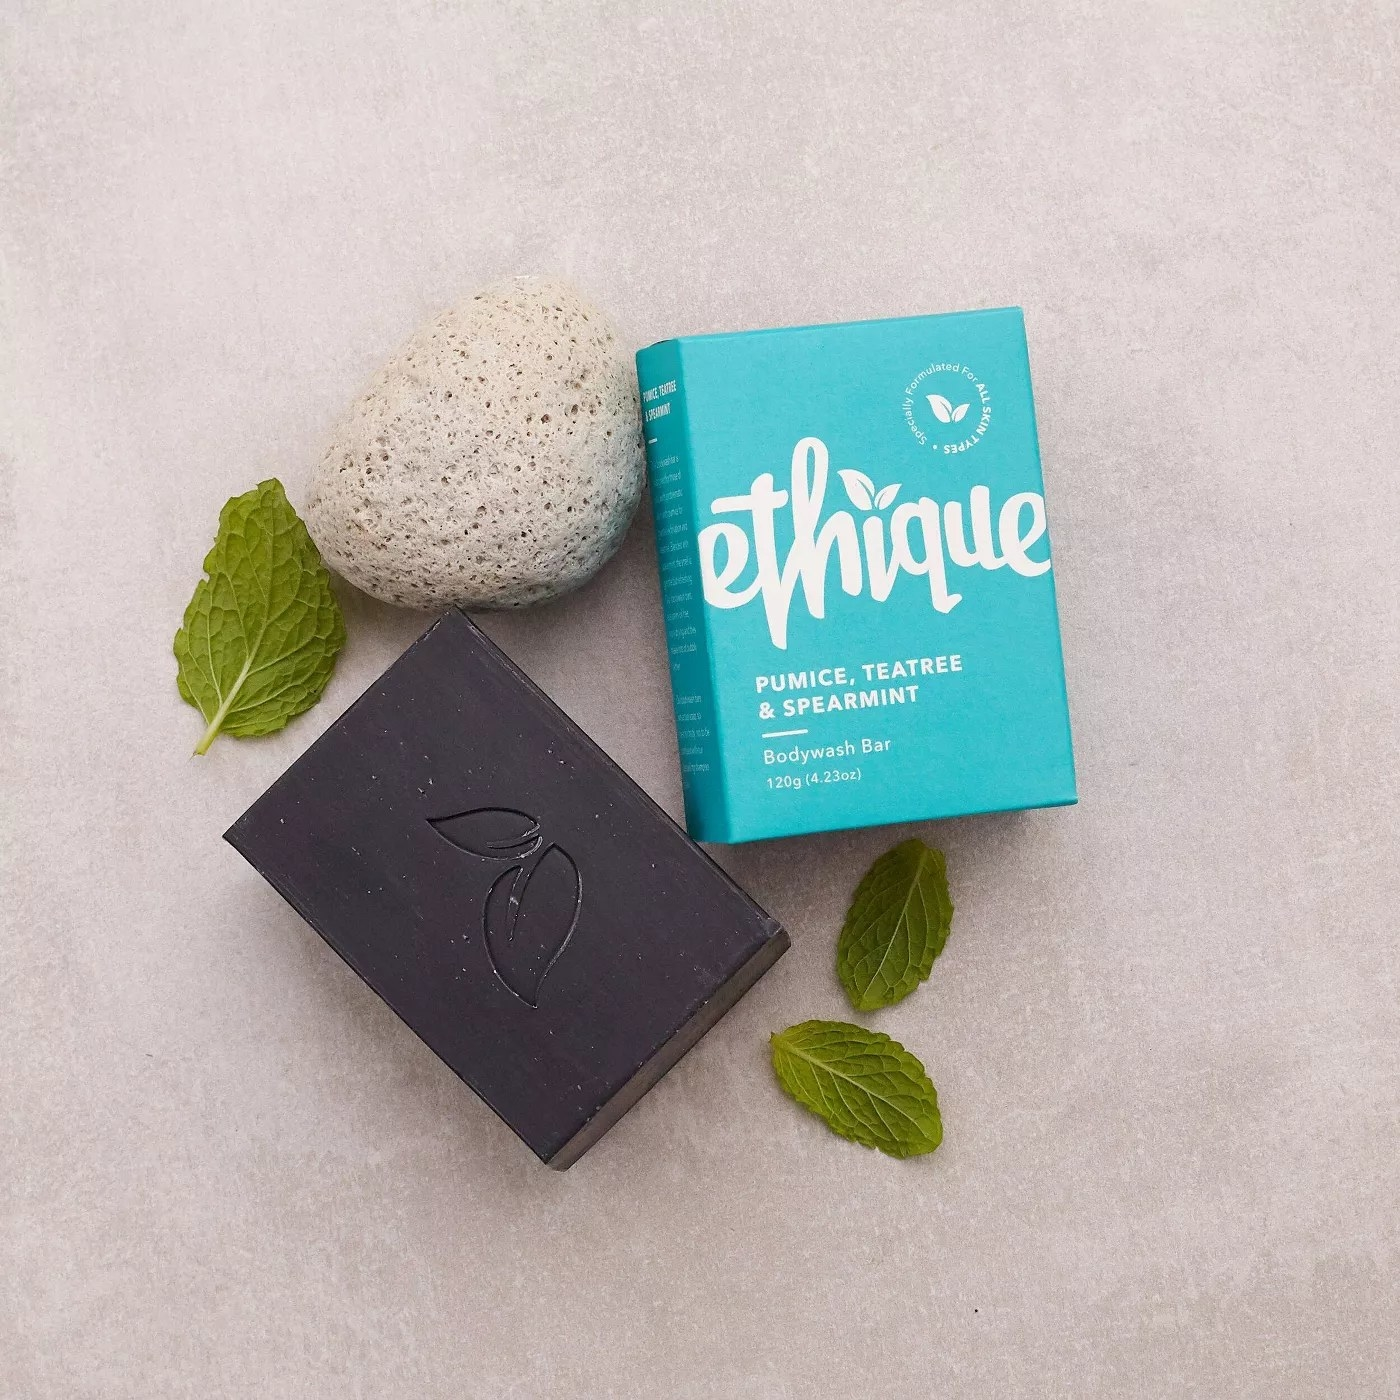 Ethique pumice, teatree, and spearmint bodywash bar